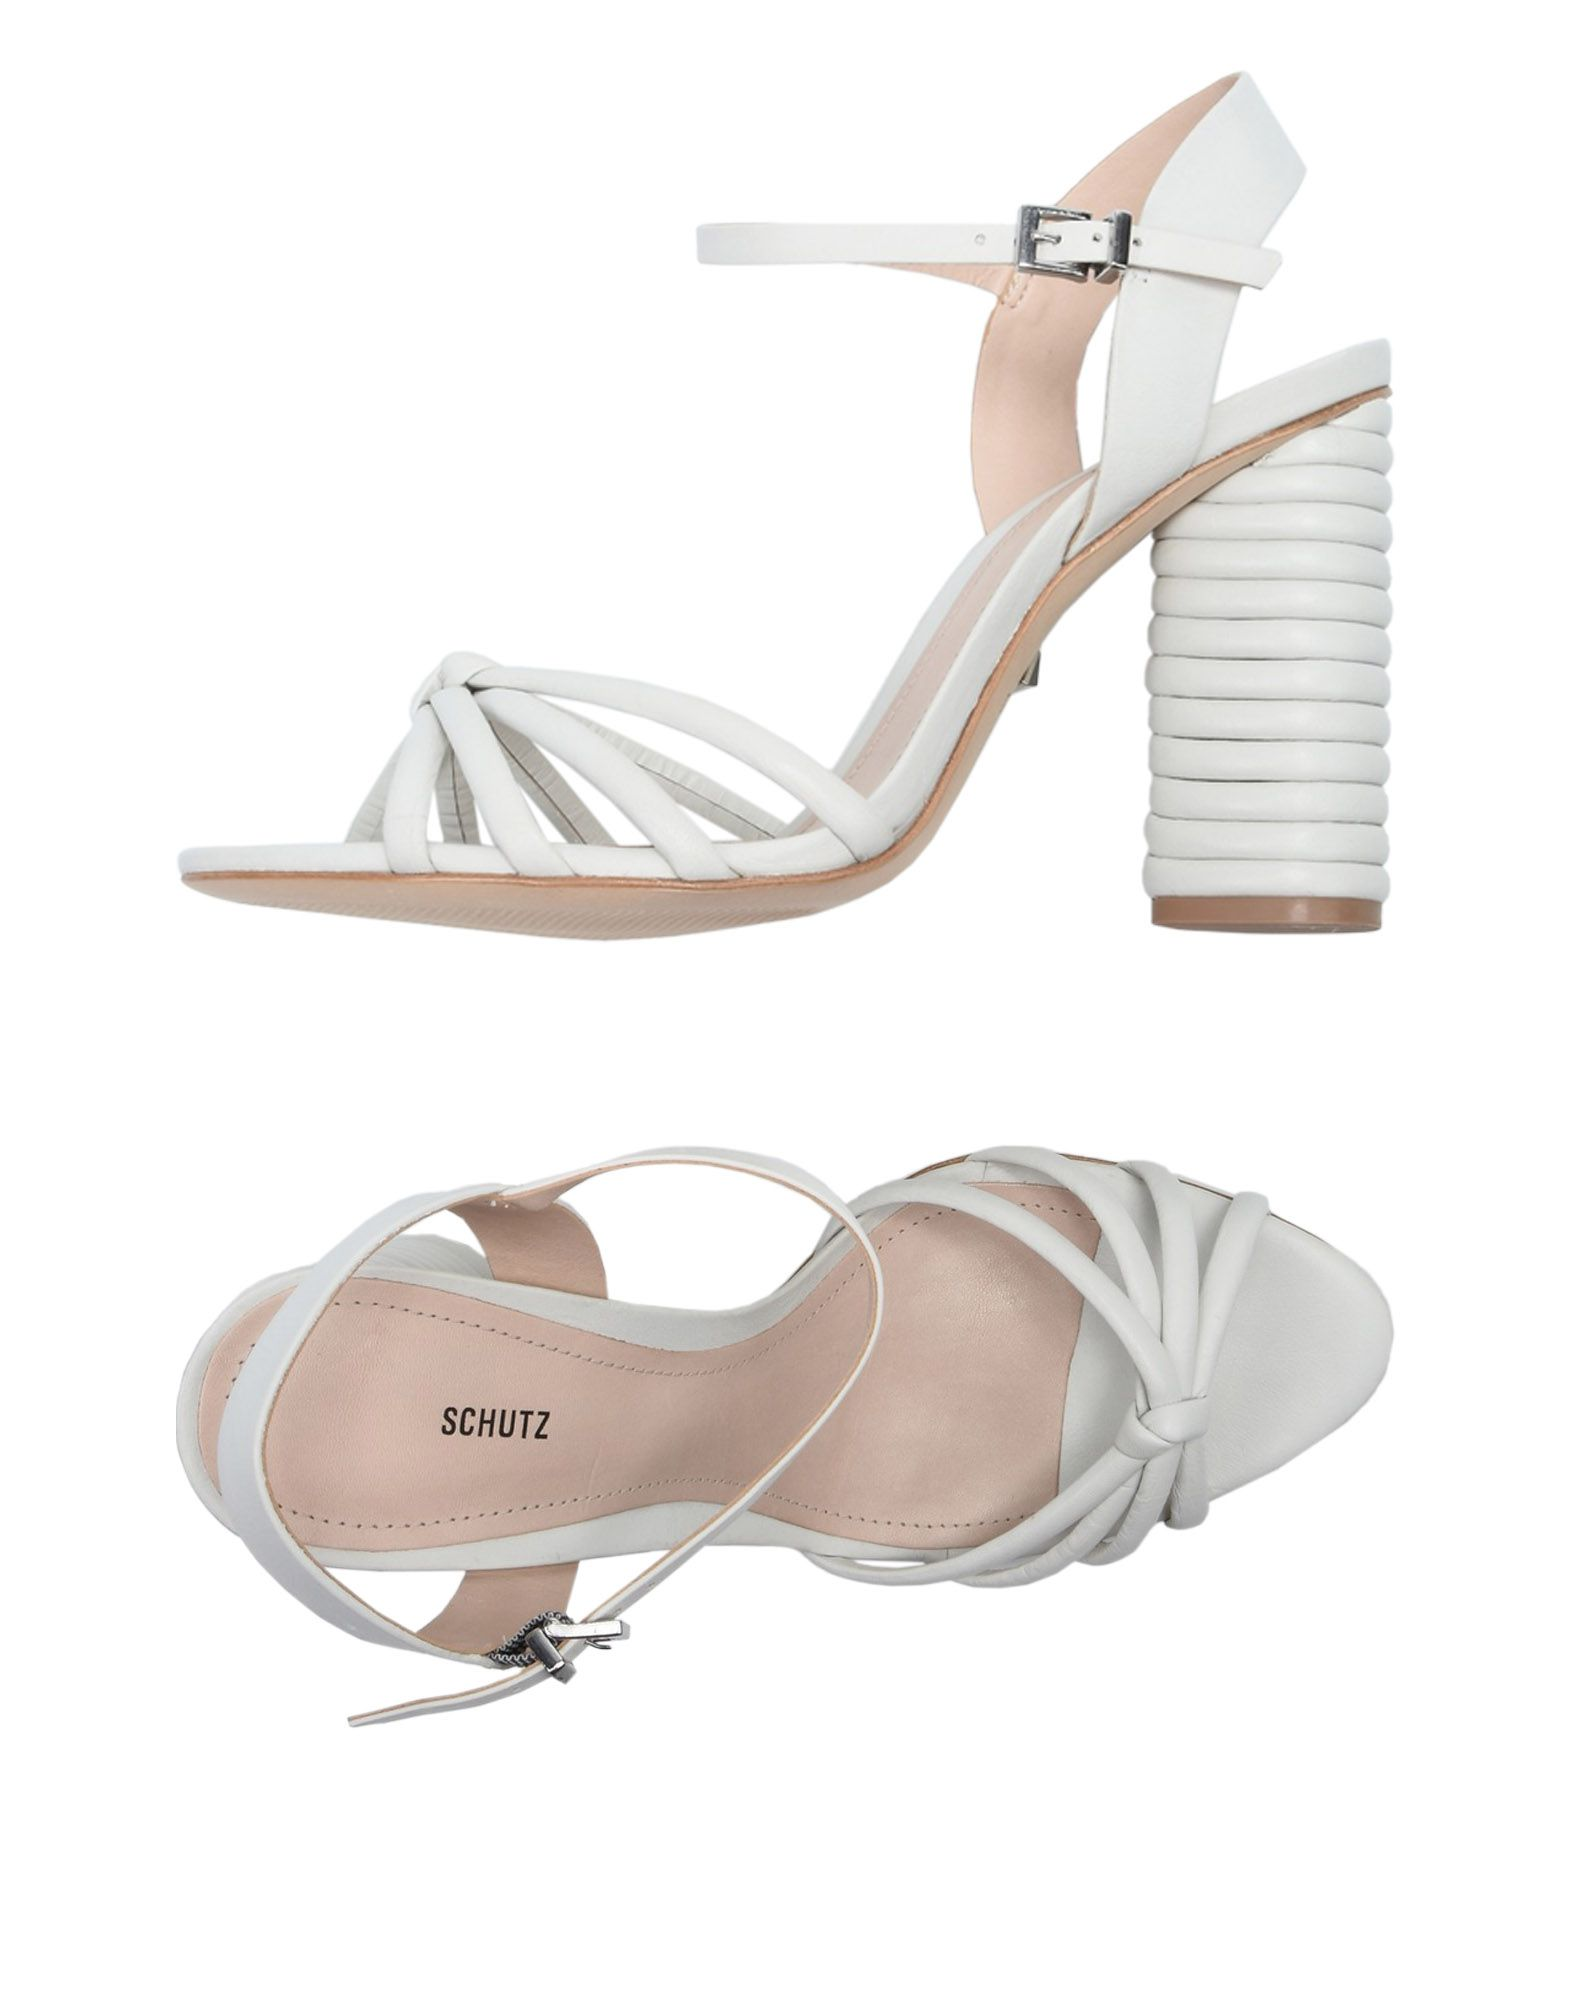 Schutz Sandals - Women Schutz United Sandals online on  United Schutz Kingdom - 11483111GD f105b7